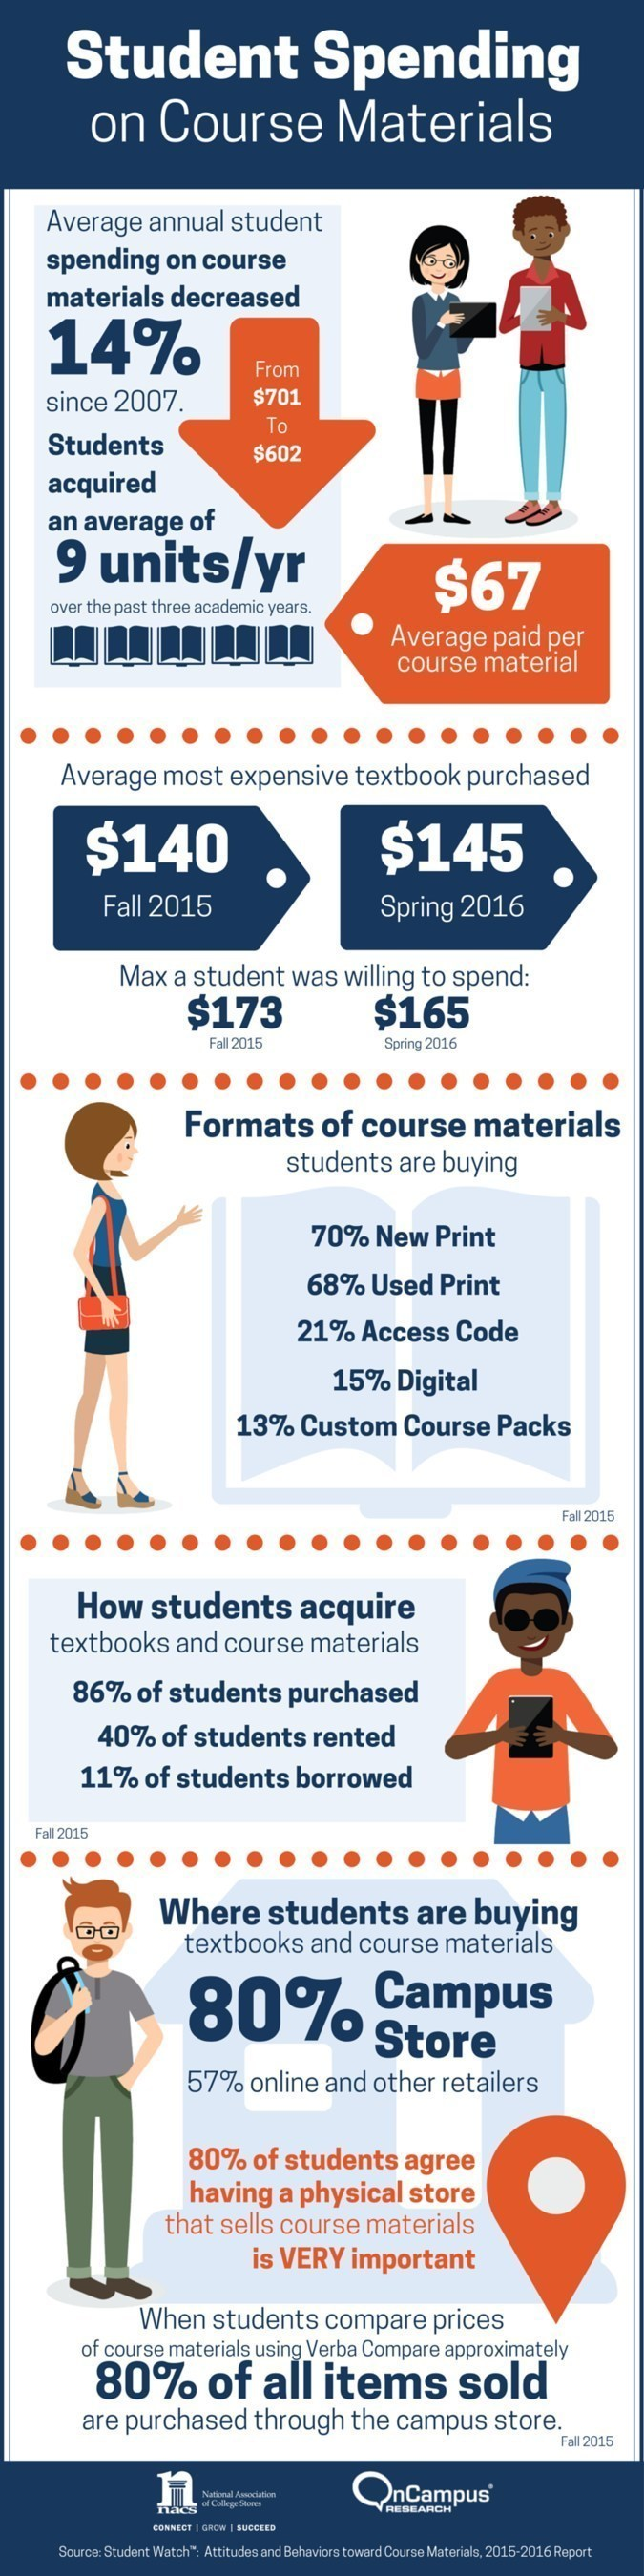 Student Spending on Course Materials